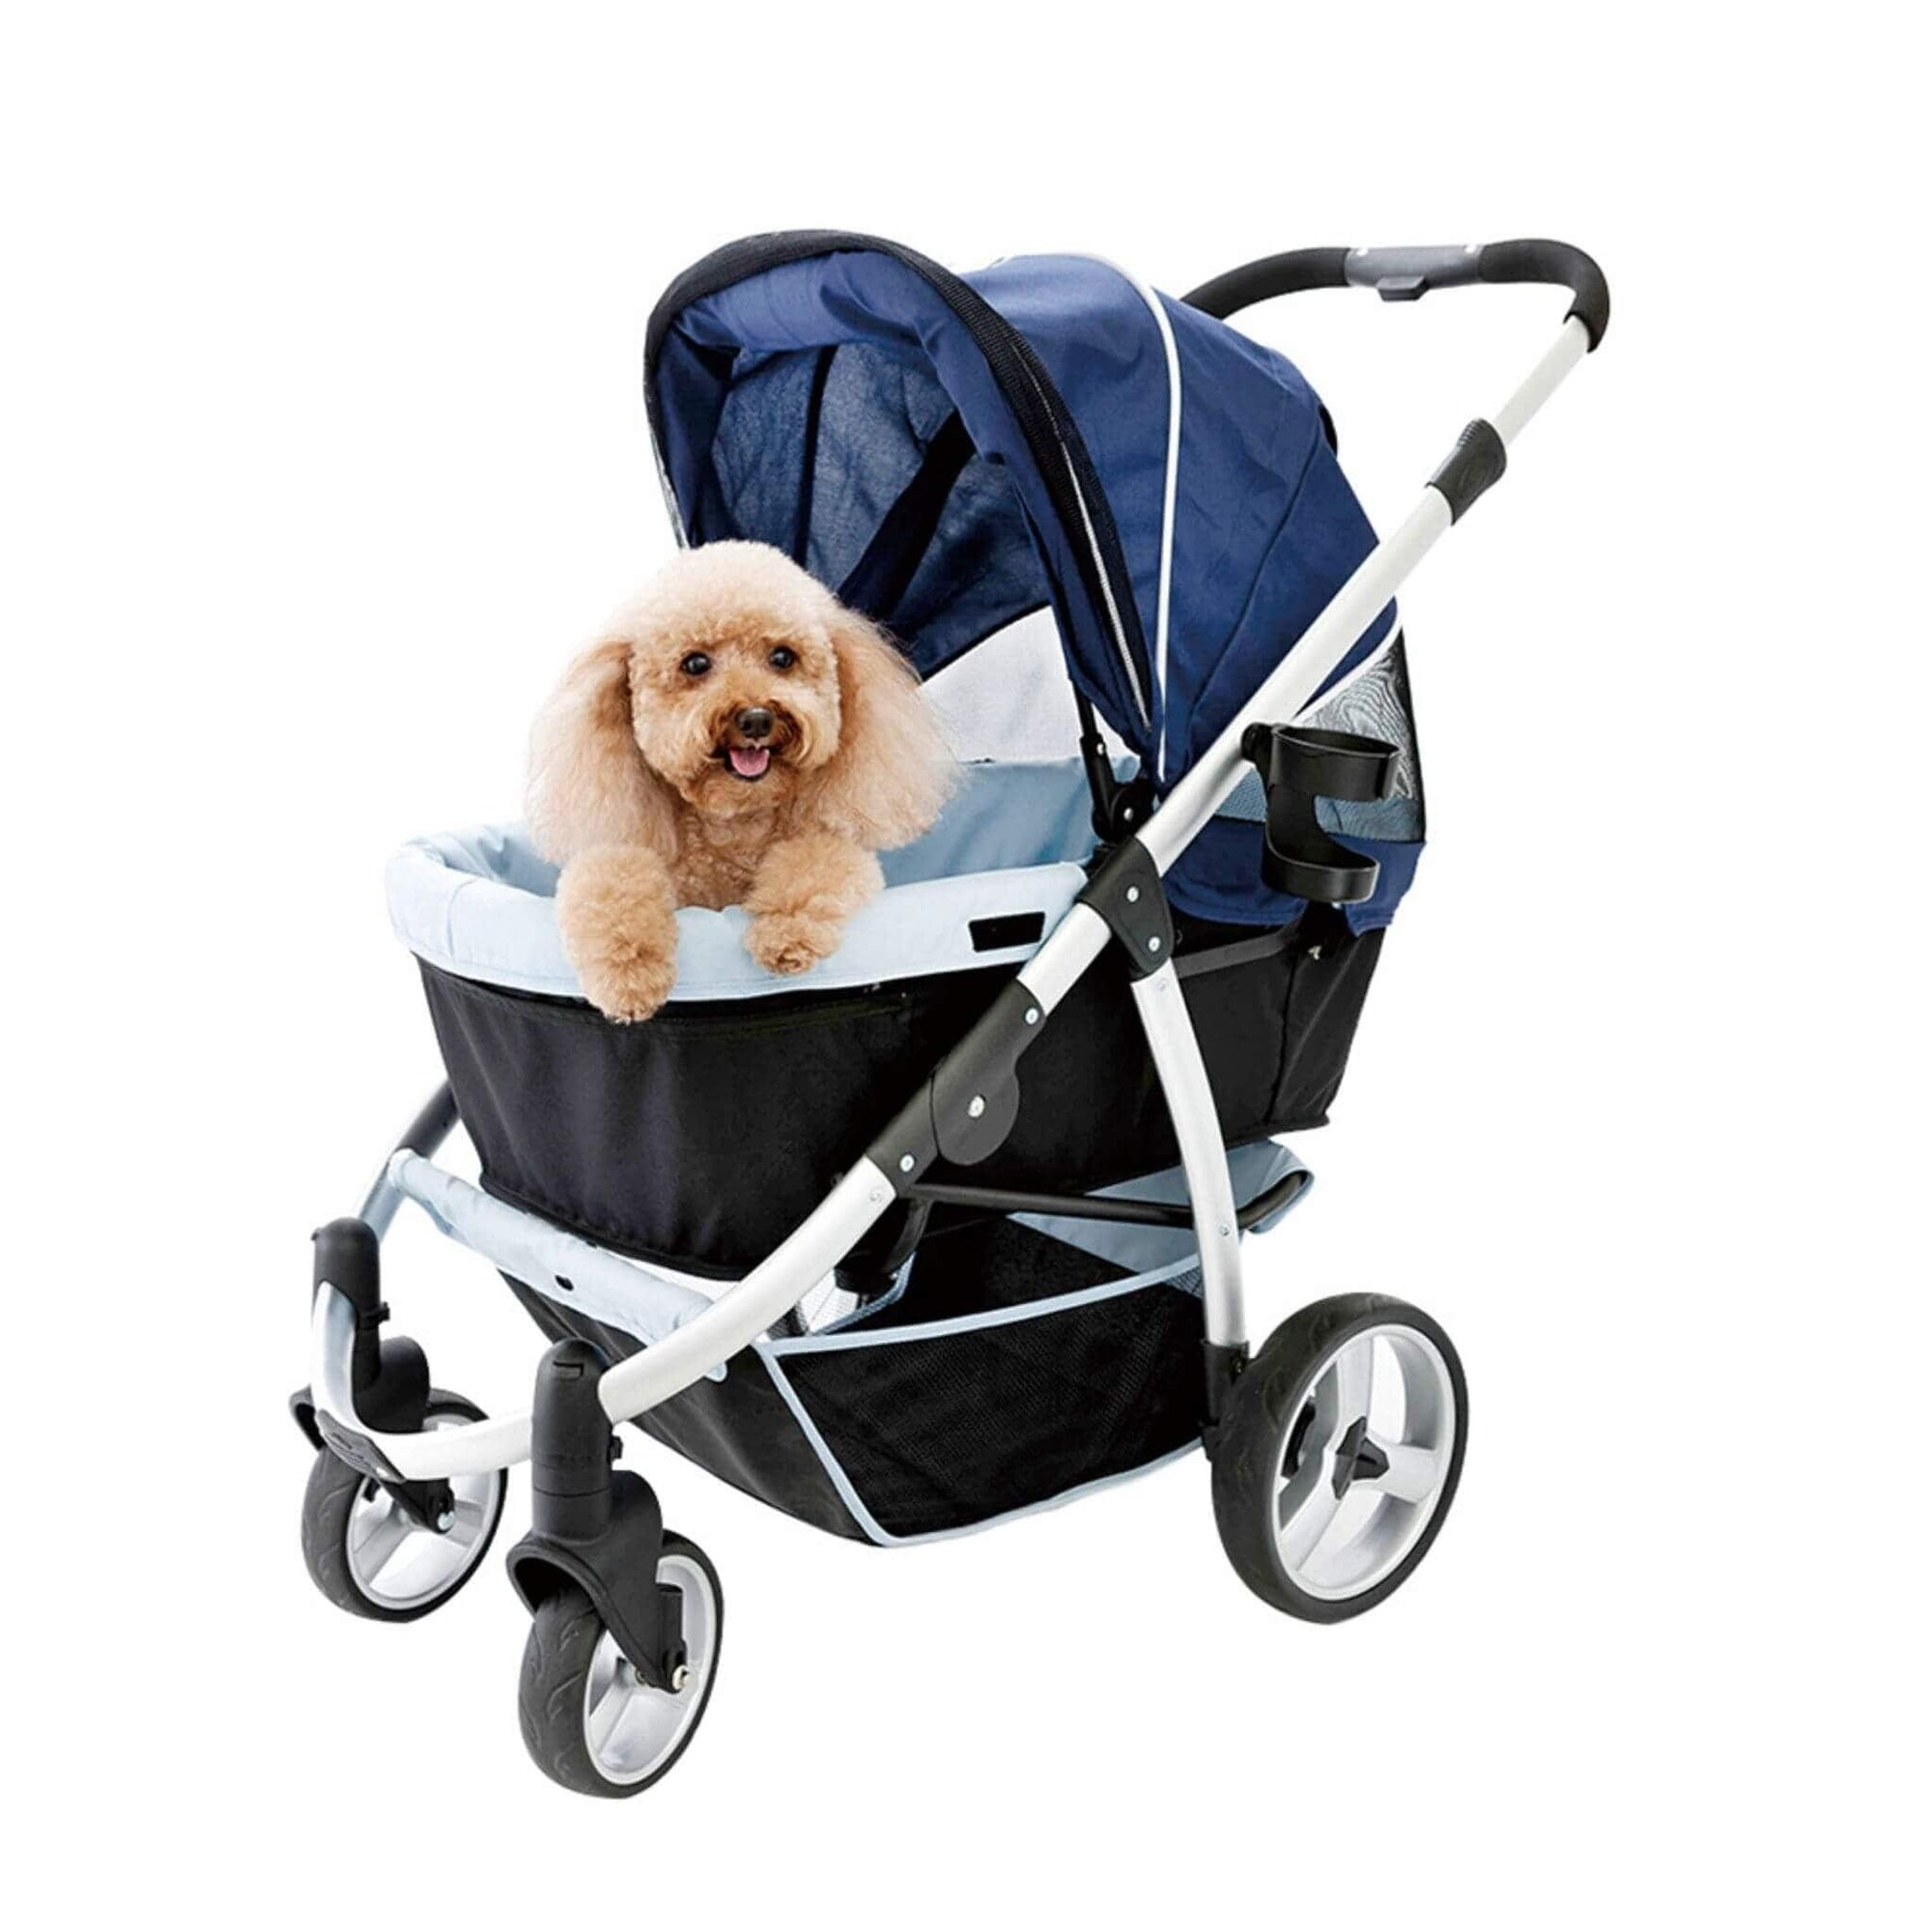 Ibiyaya Elegant Retro I Dog Stroller - Navy - Dog Model